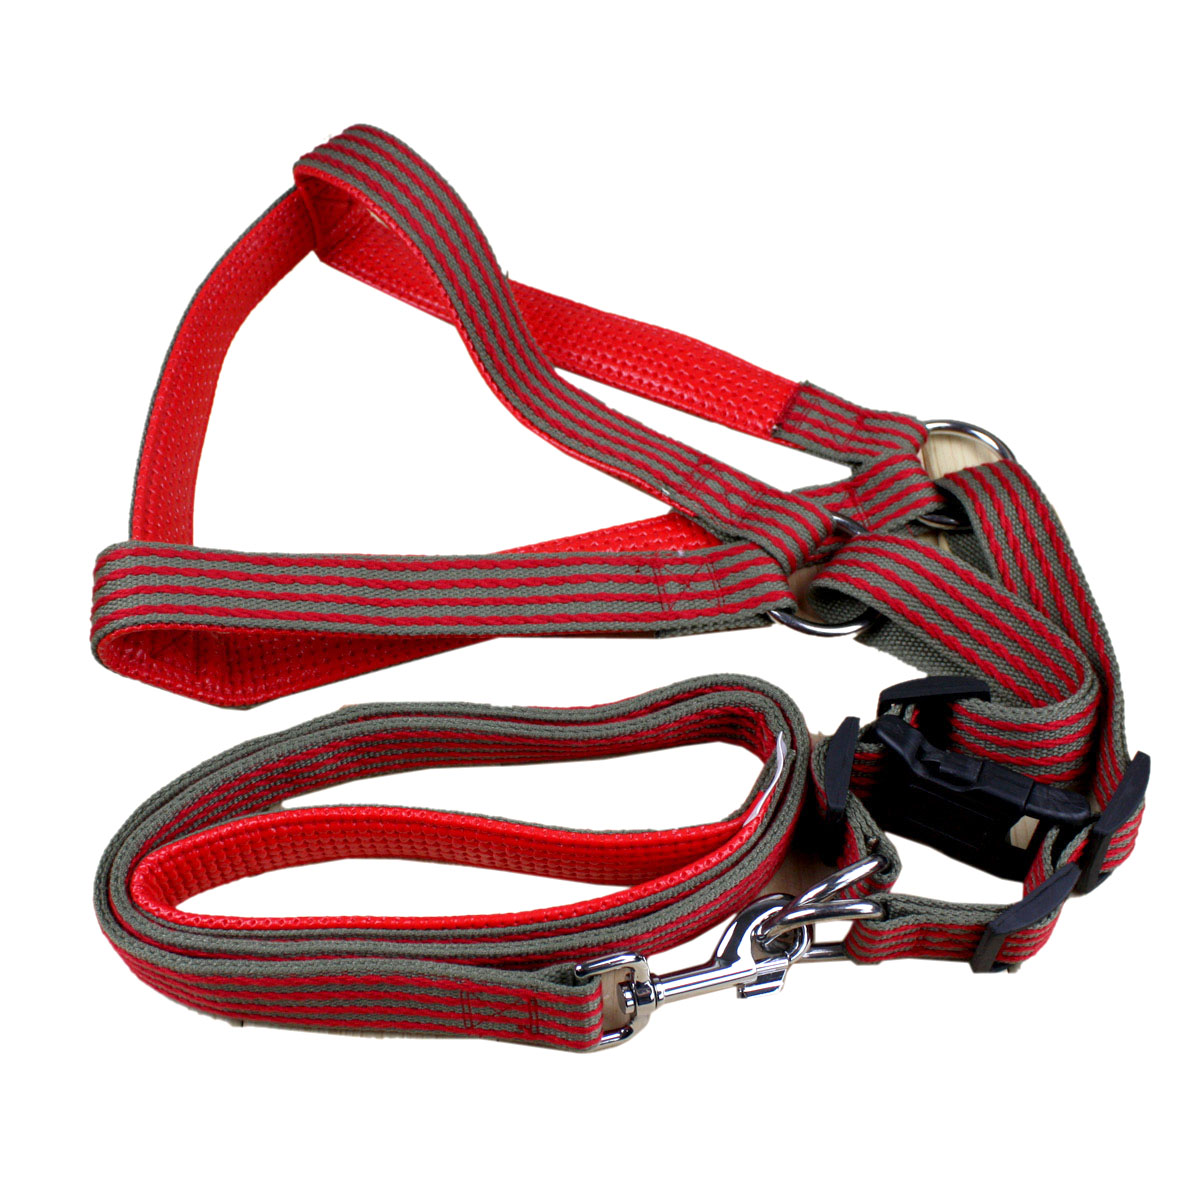 Bobo cotton foam dedicated pet harness with a large dog golden labrador dog leash belt retractor